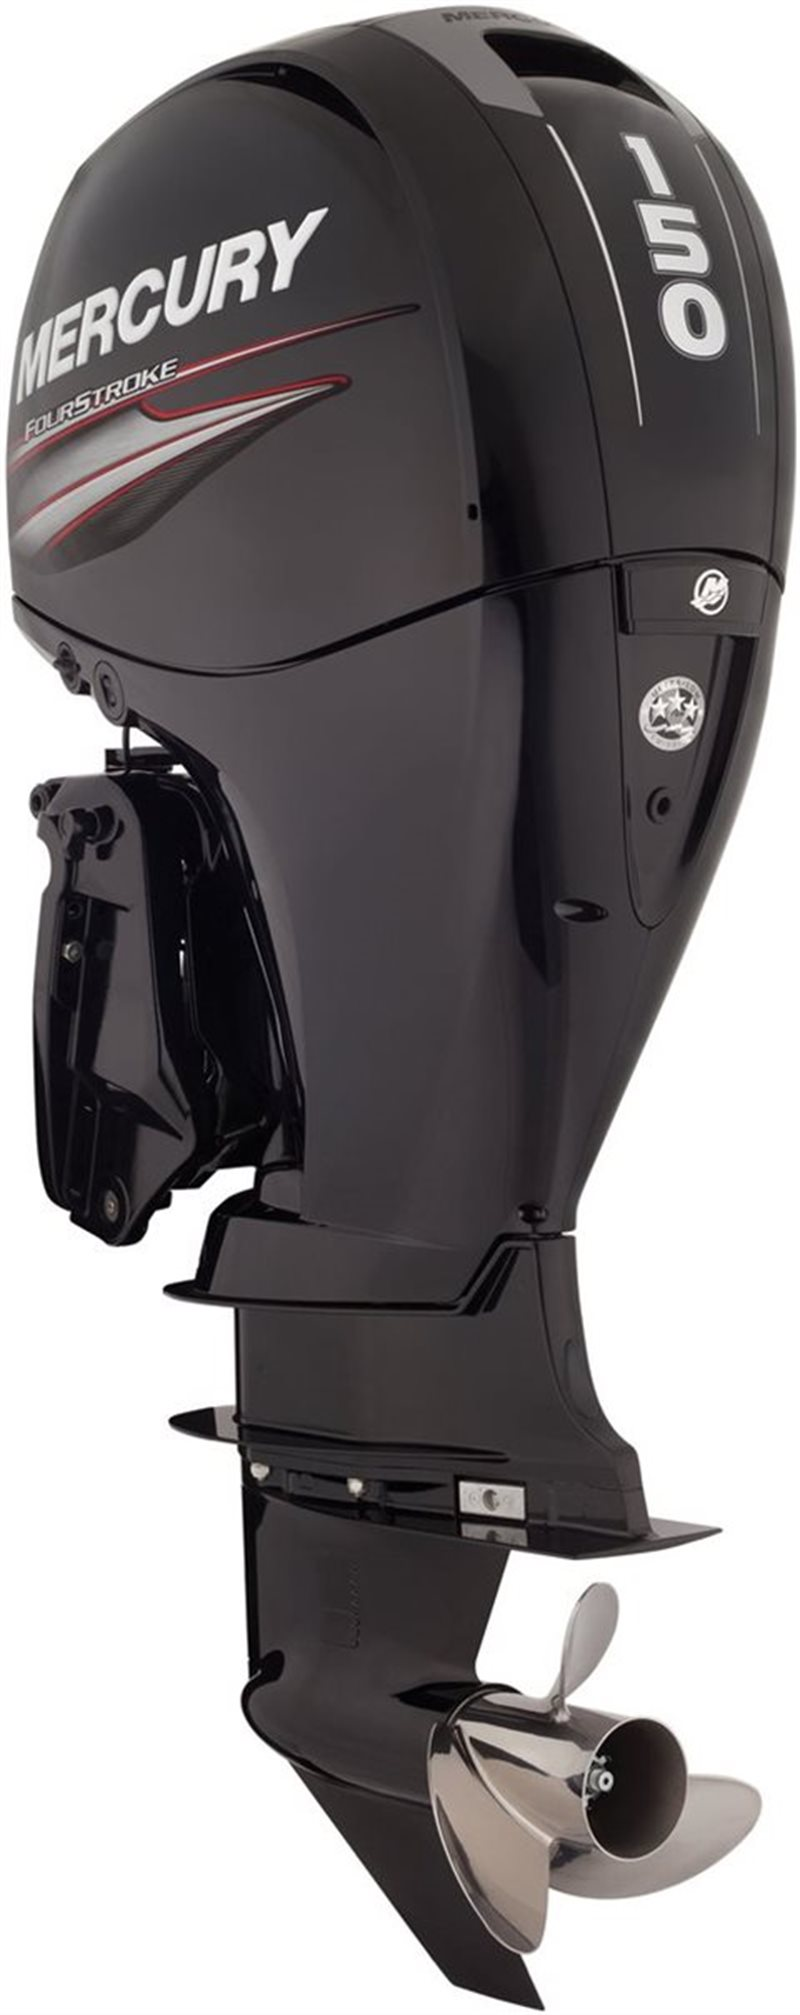 2021 Mercury Outboard FourStroke 150 hp 150 hp at Pharo Marine, Waunakee, WI 53597